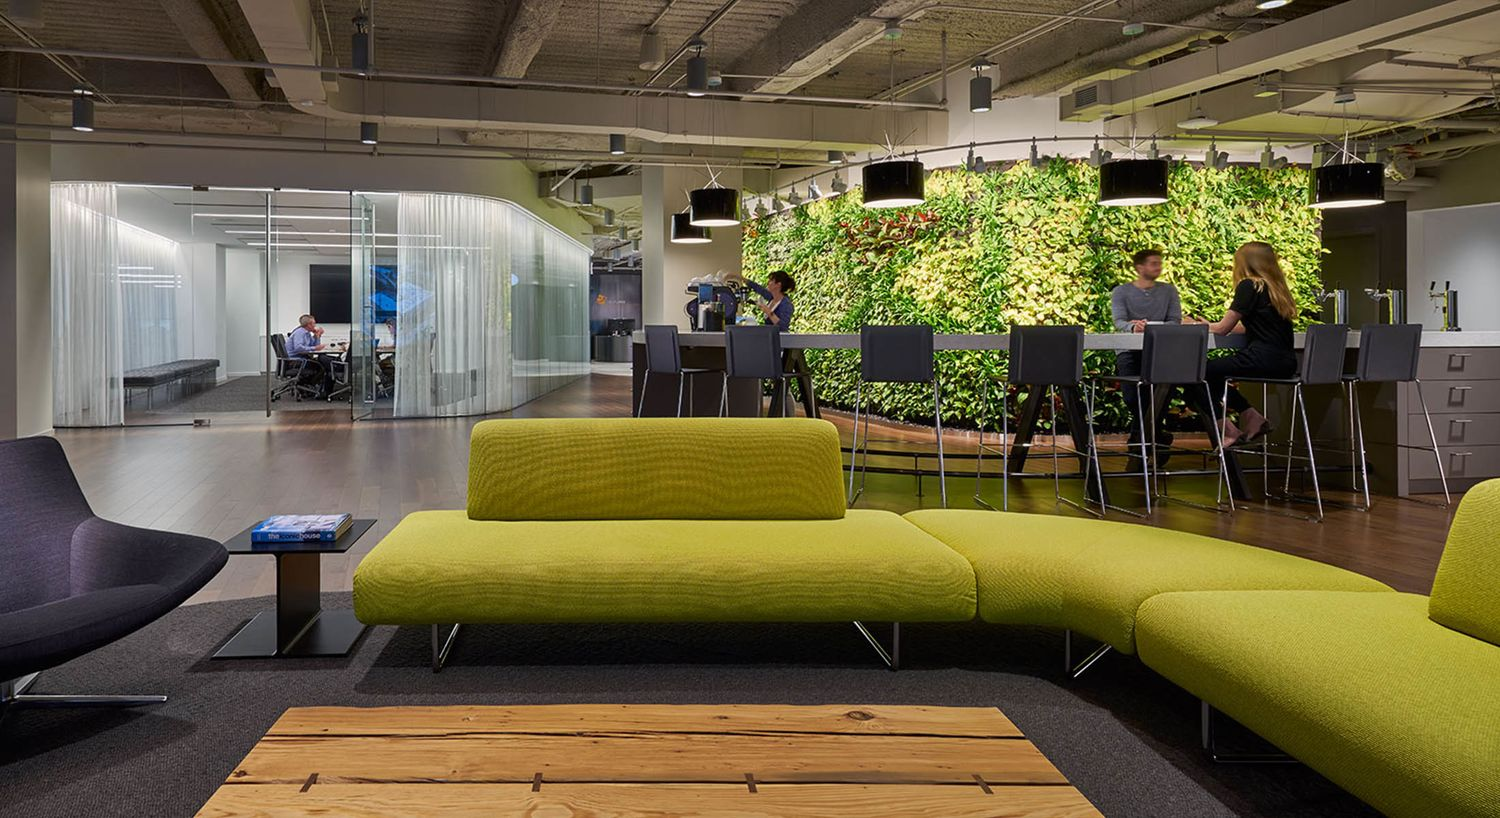 How To Design Spaces For People With >> The Language Of Space